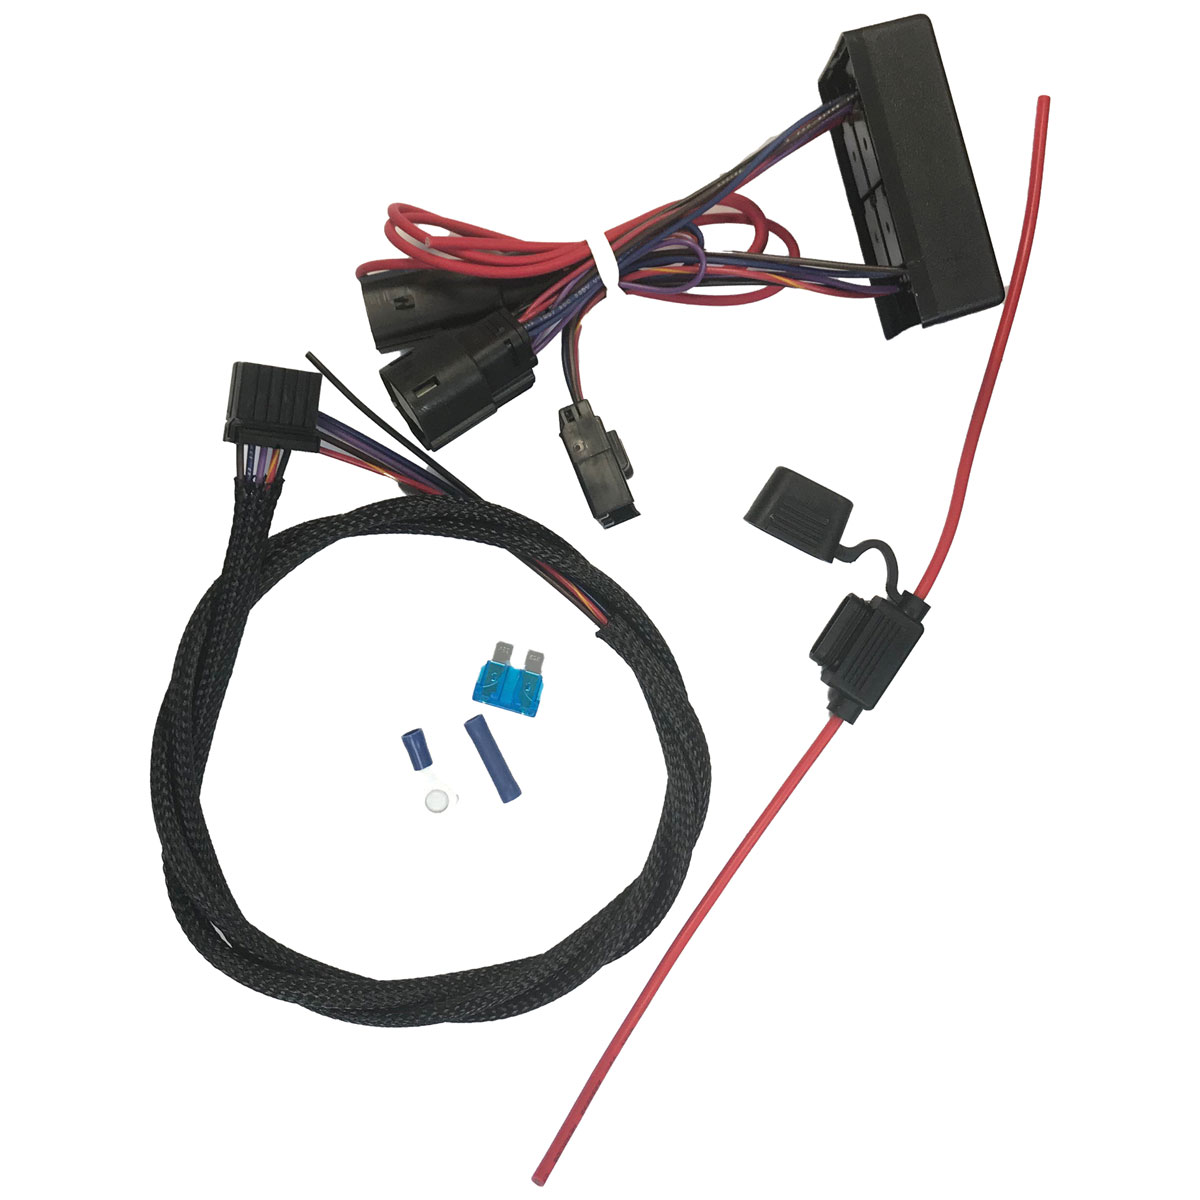 hight resolution of fbi trailer wire harness 6 pin molex connector fbi harness 6fbi trailer wire harness